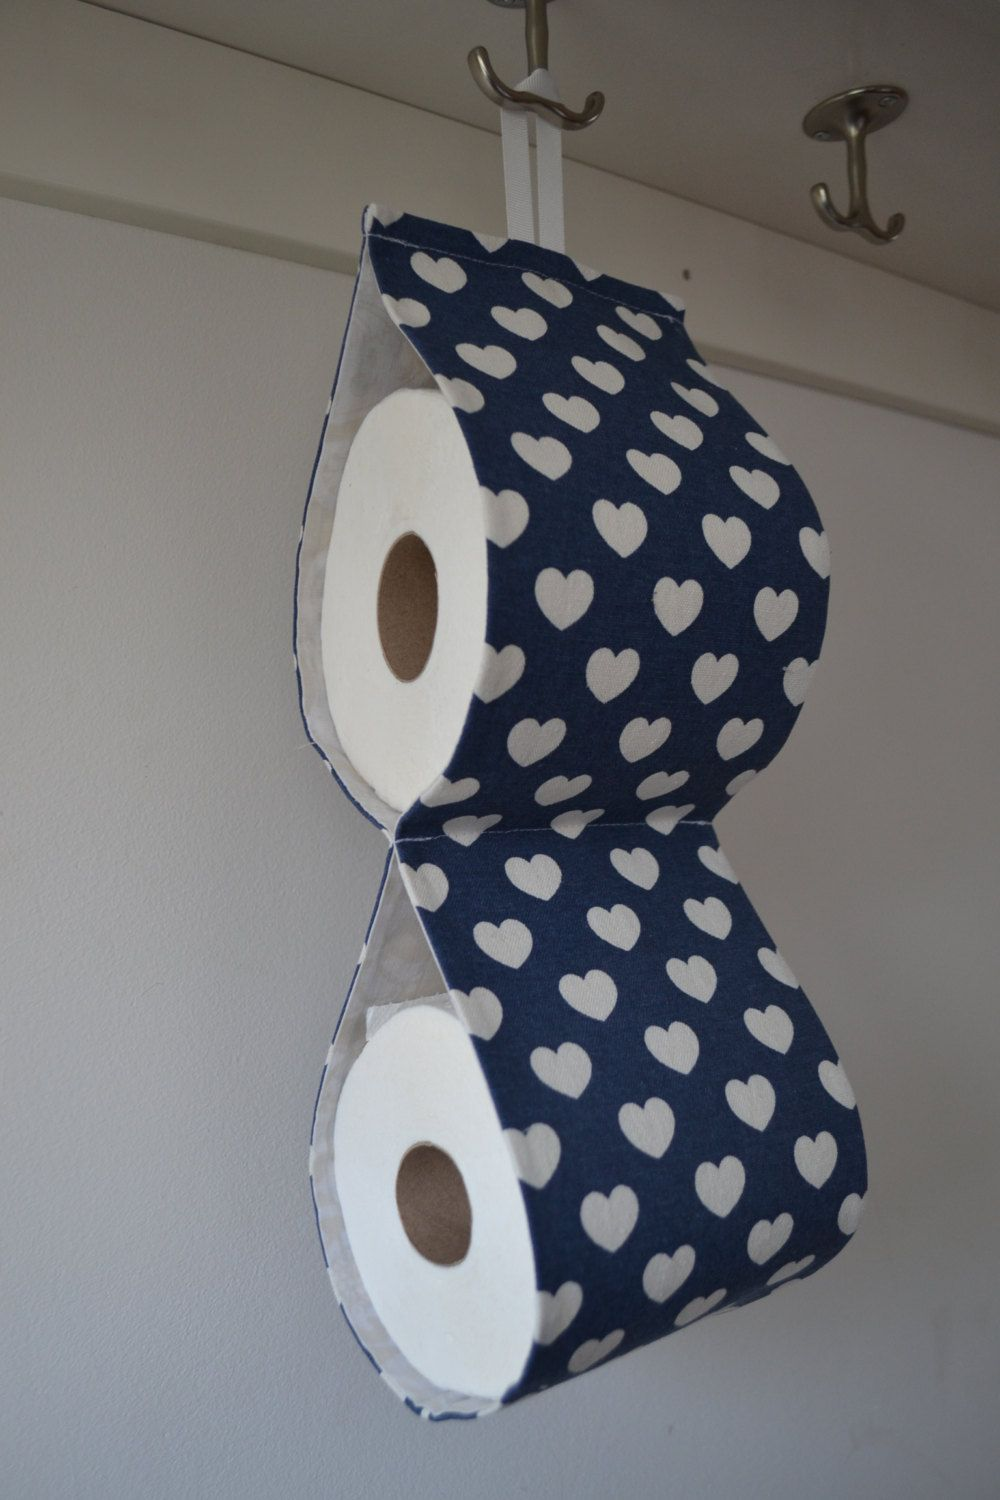 Fabric Spare Toilet Roll Holder Storage For 2 Rolls Navy Canvas Fabric With Cream Heart Home Gift Bath Accessory Toilet Roll Holder Storage Toilet Paper Holder Toilet Roll Holder